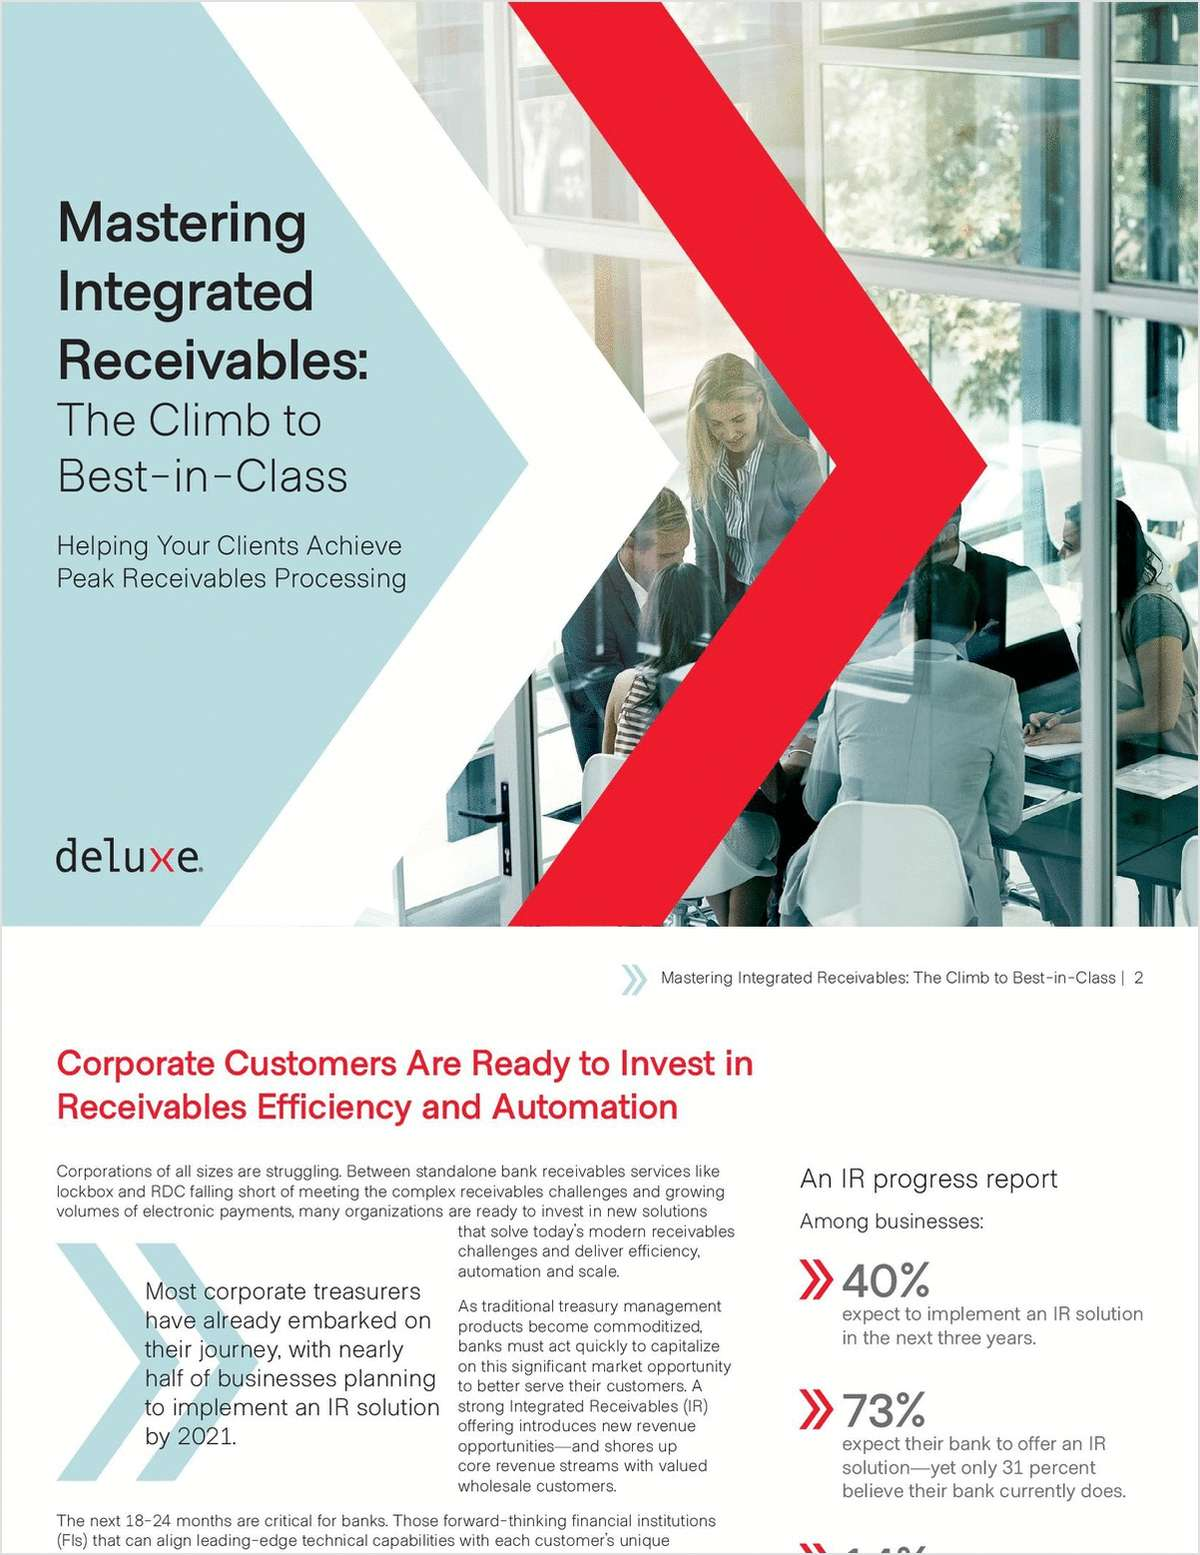 Mastering Integrated Receivables: The Climb to Best-in-Class